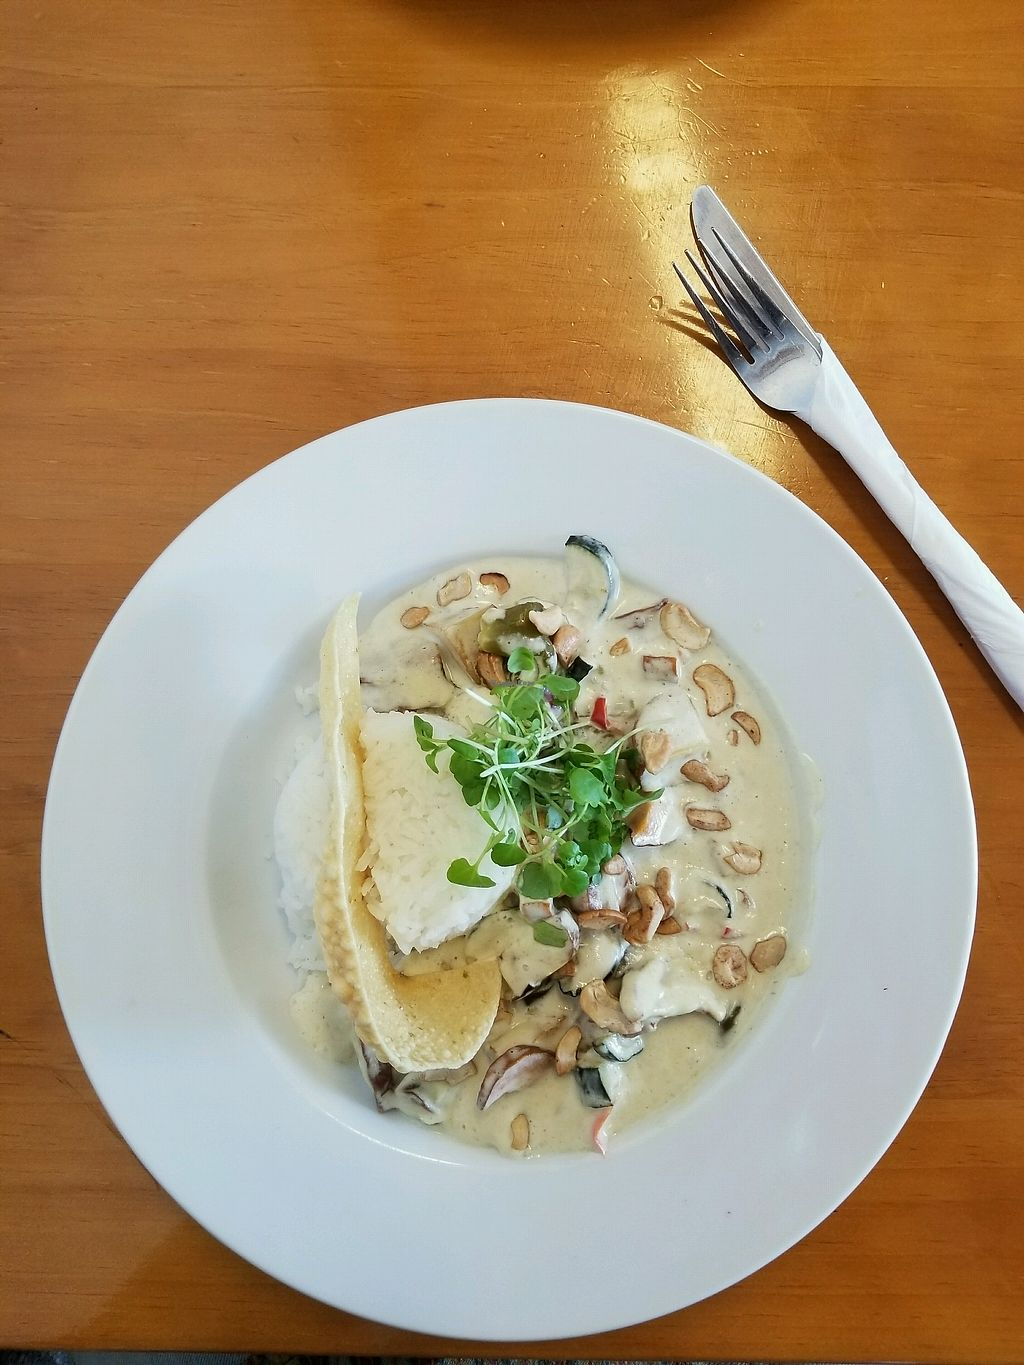 "Photo of Mud Ducks Cafe  by <a href=""/members/profile/AndyTheVWDude"">AndyTheVWDude</a> <br/>Vege Thai Green Curry <br/> March 15, 2018  - <a href='/contact/abuse/image/112778/370920'>Report</a>"